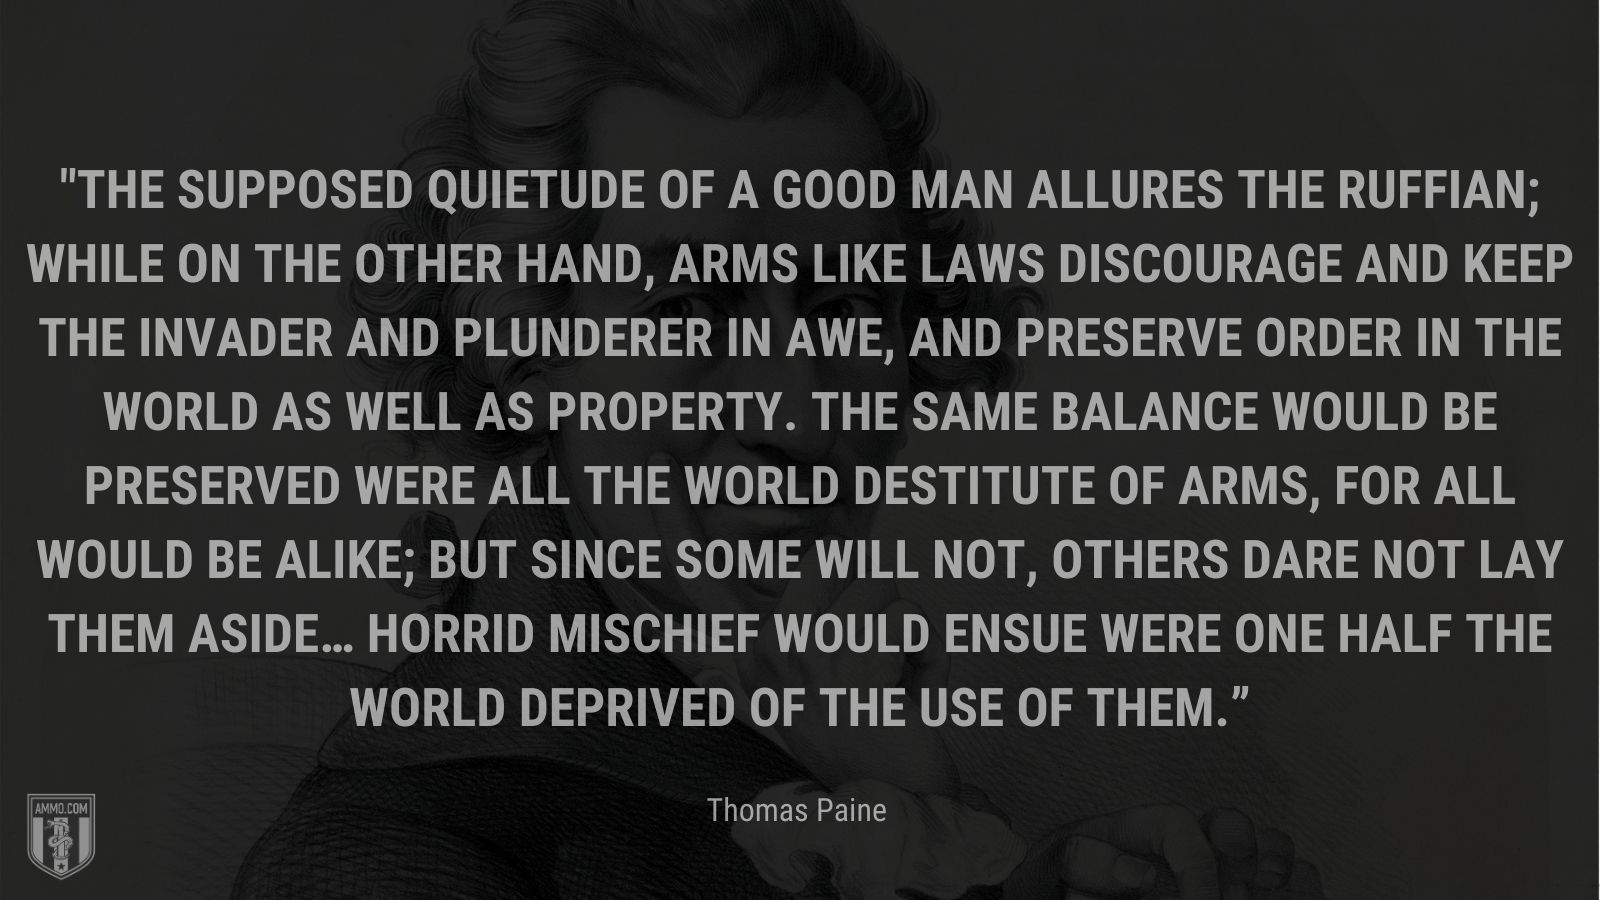 """""""The supposed quietude of a good man allures the ruffian; while on the other hand, arms like laws discourage and keep the invader and plunderer in awe, and preserve order in the world as well as property. The same balance would be preserved were all the world destitute of arms, for all would be alike; but since some will not, others dare not lay them aside… Horrid mischief would ensue were one half the world deprived of the use of them."""" - Thomas Paine"""